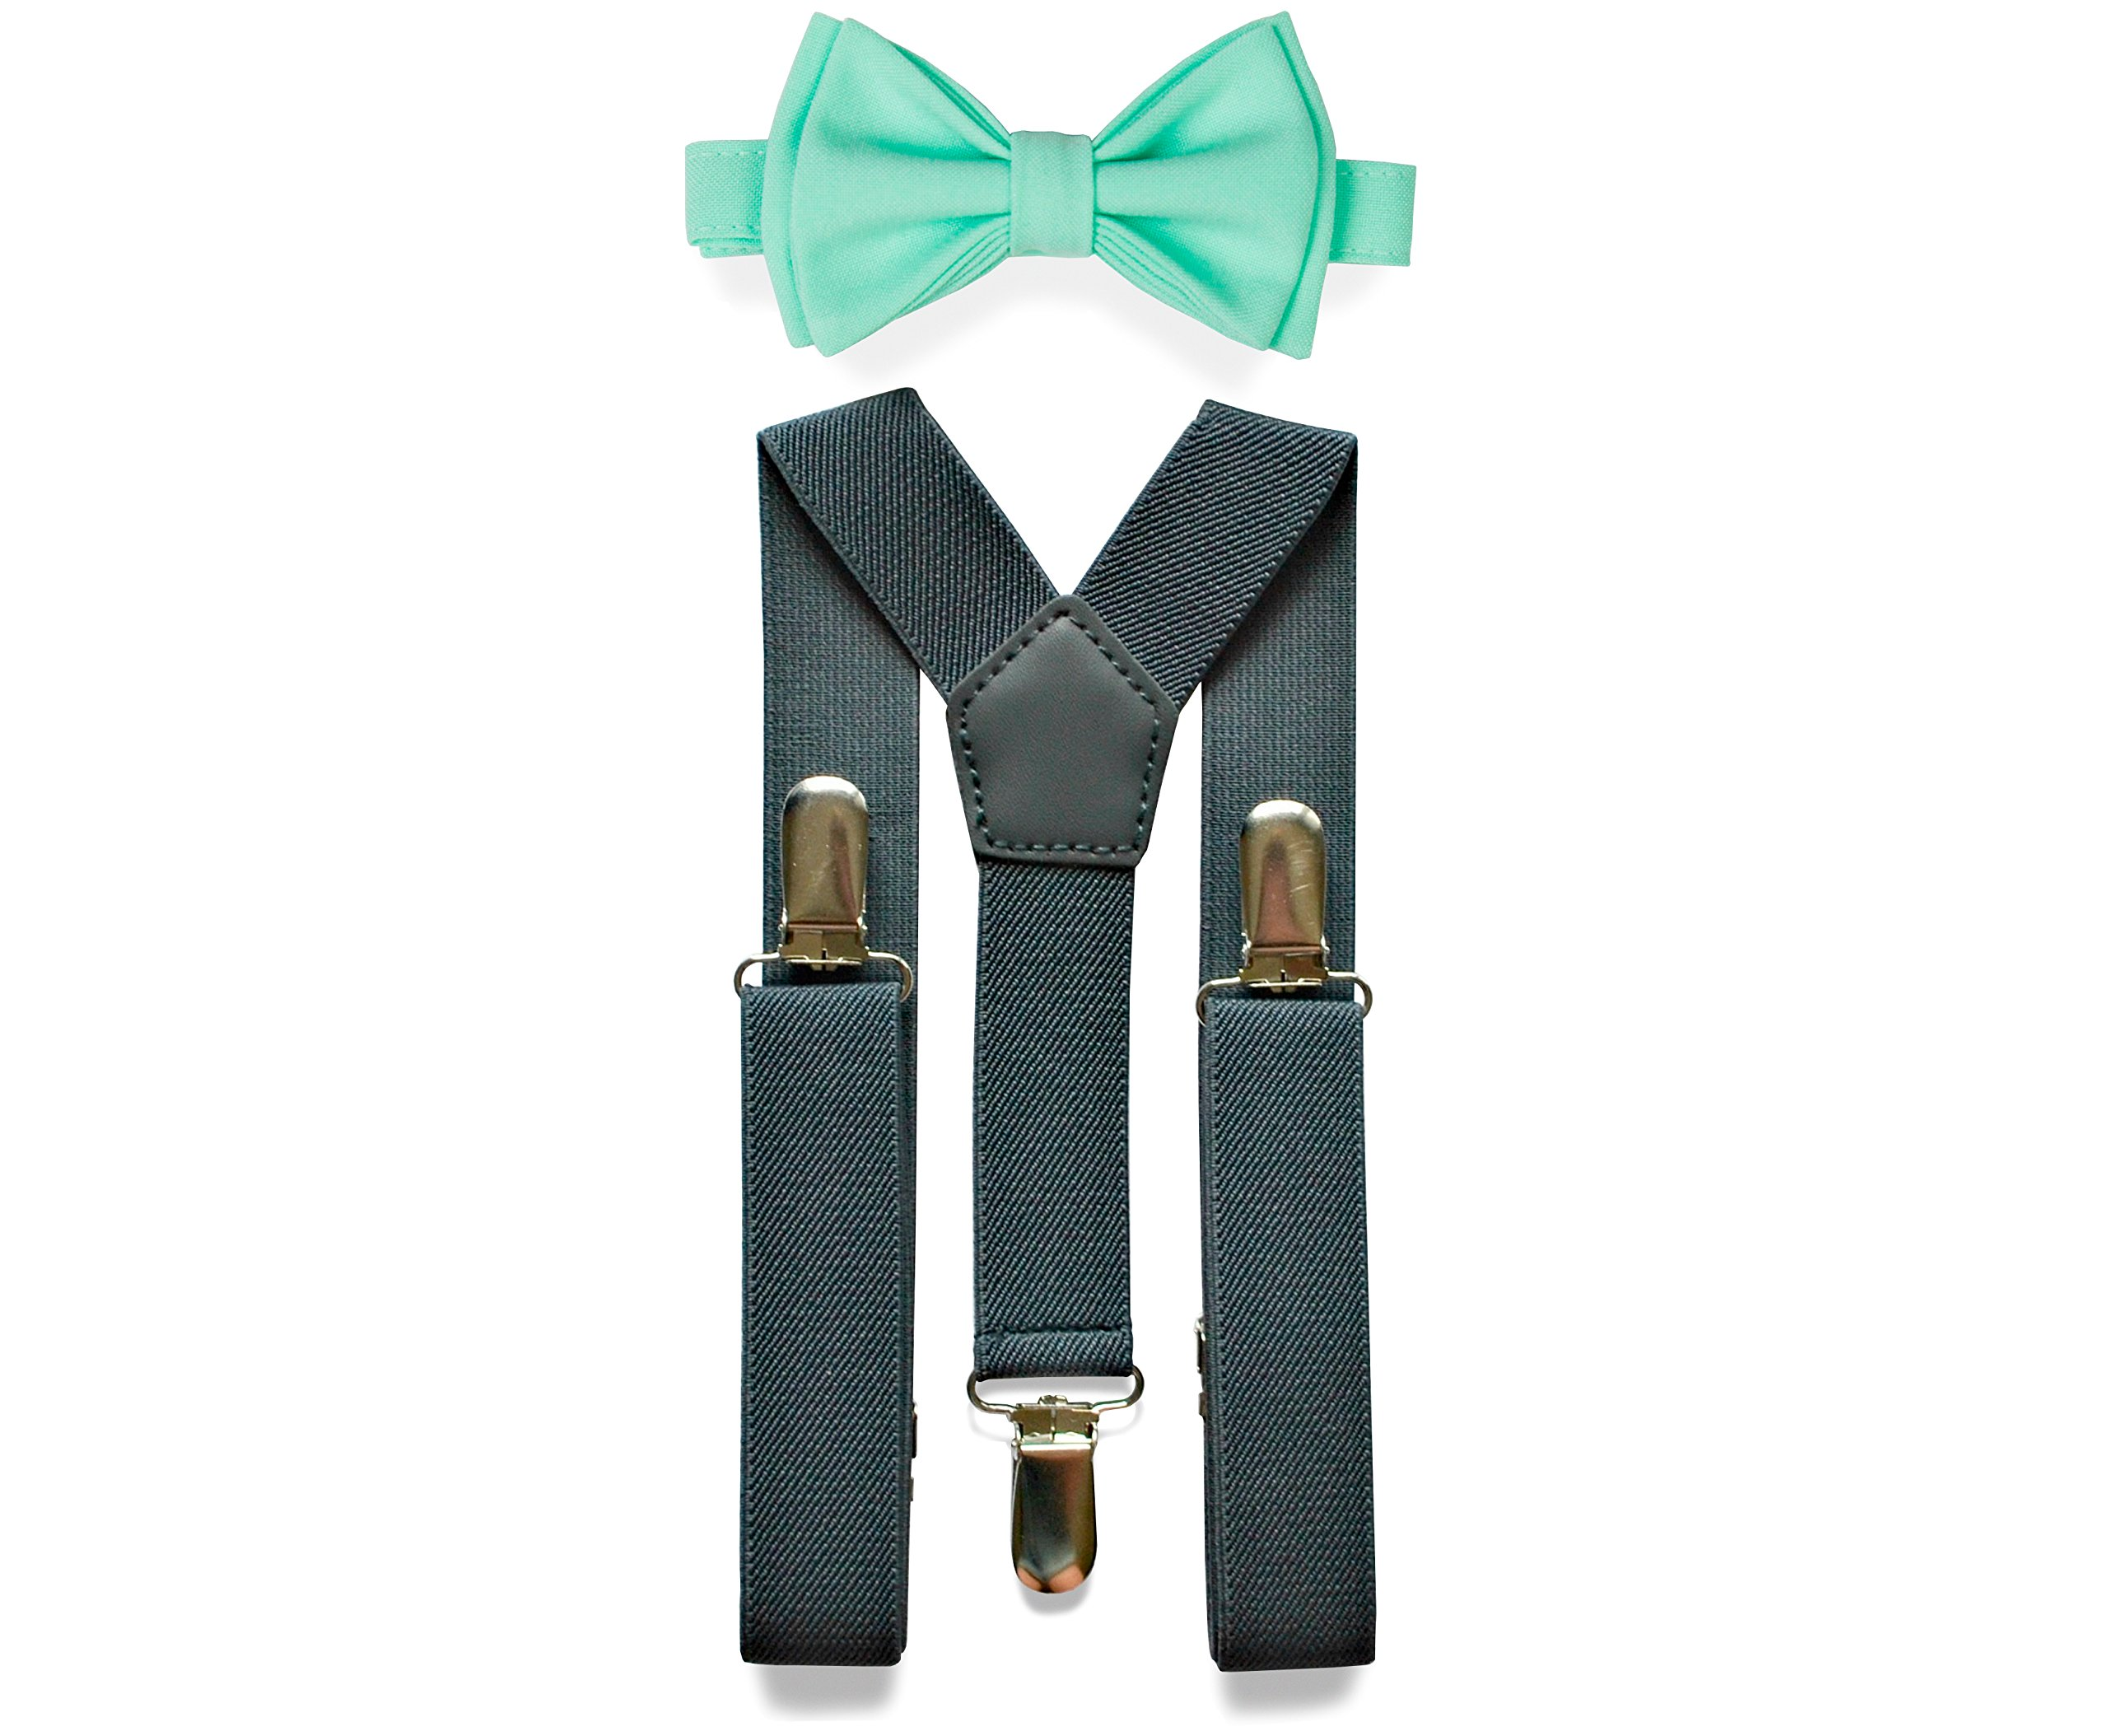 Charcoal Grey Suspenders & Bow Tie Set for Baby Toddler Boy Teen Men (2. Toddler (18 mo - 6 yrs), Charcoal Grey Suspenders, Mint Bow Tie)